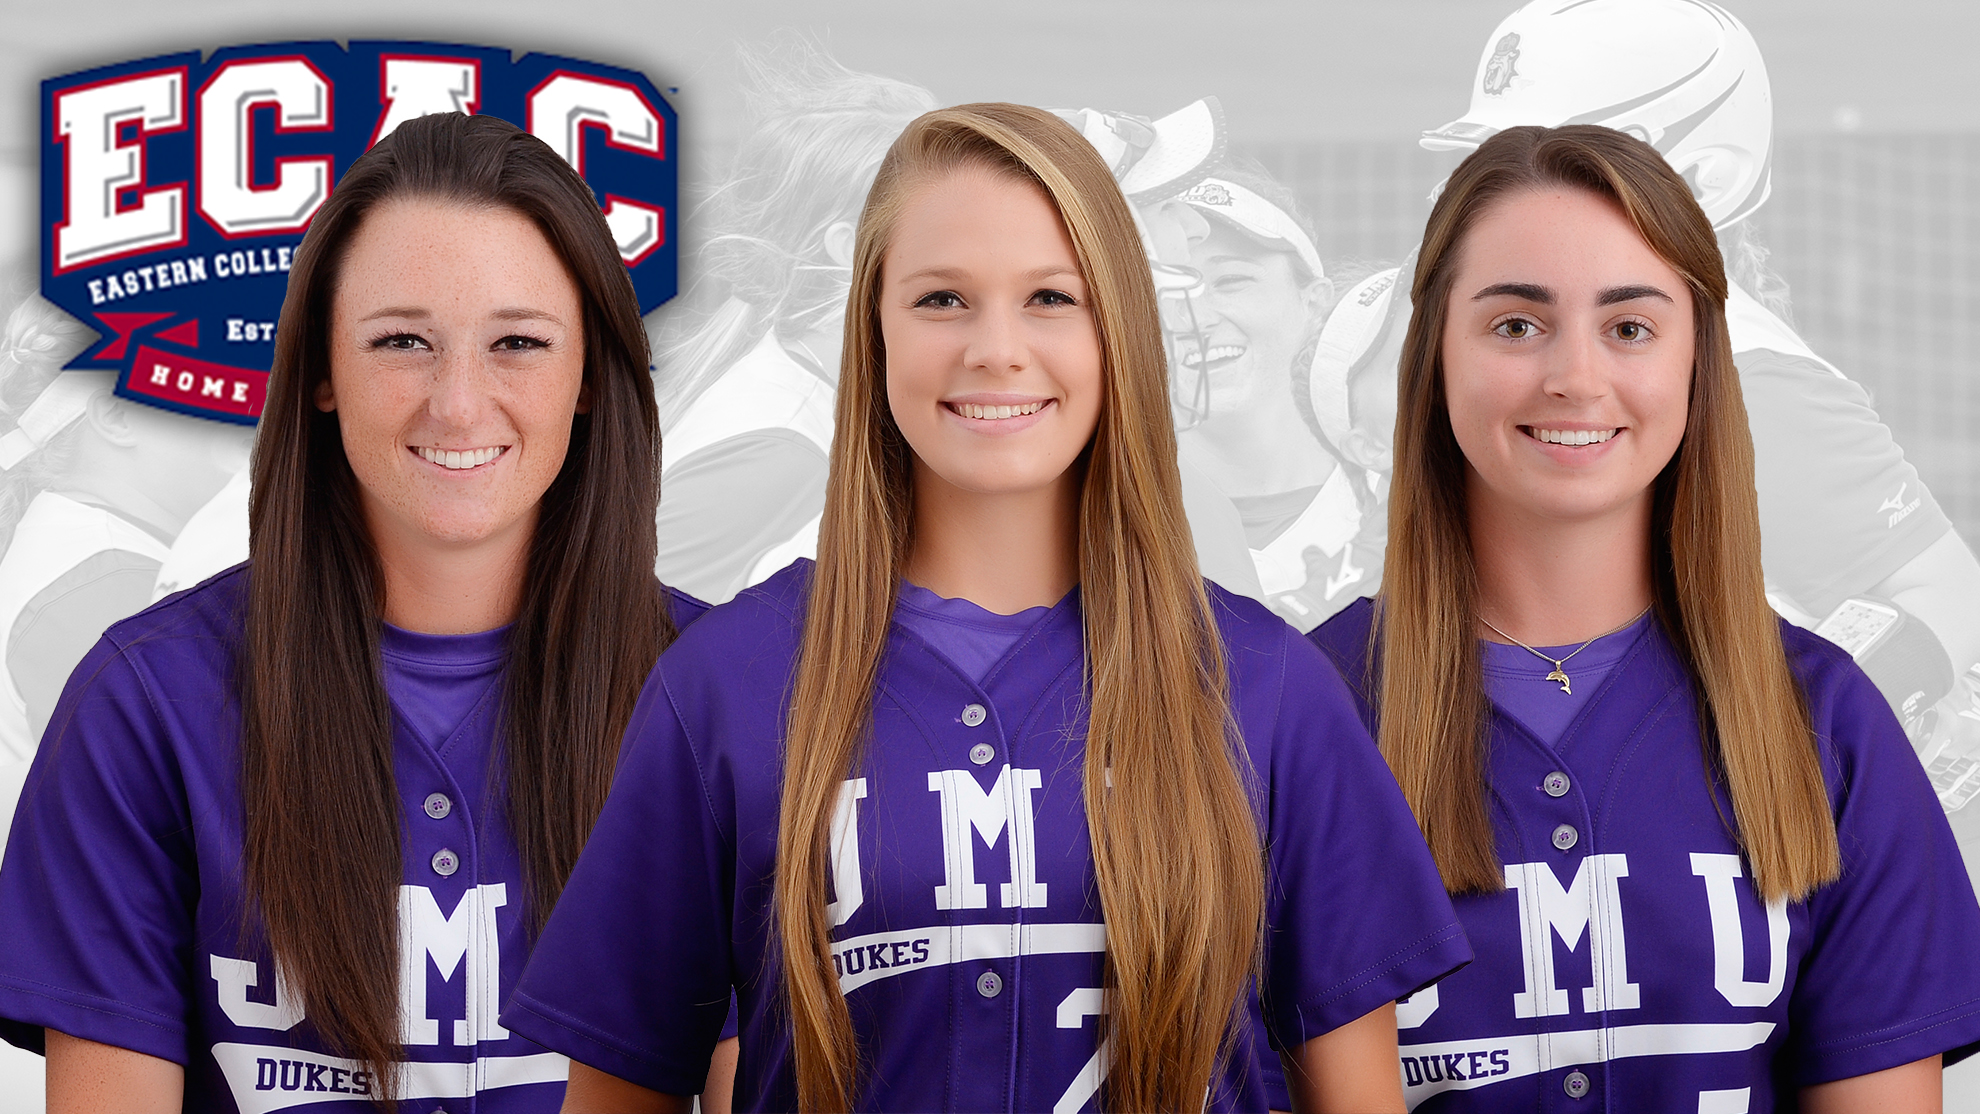 Softball: Good Earns ECAC Pitcher of the Year; Three Dukes Selected To All-ECAC Squads)